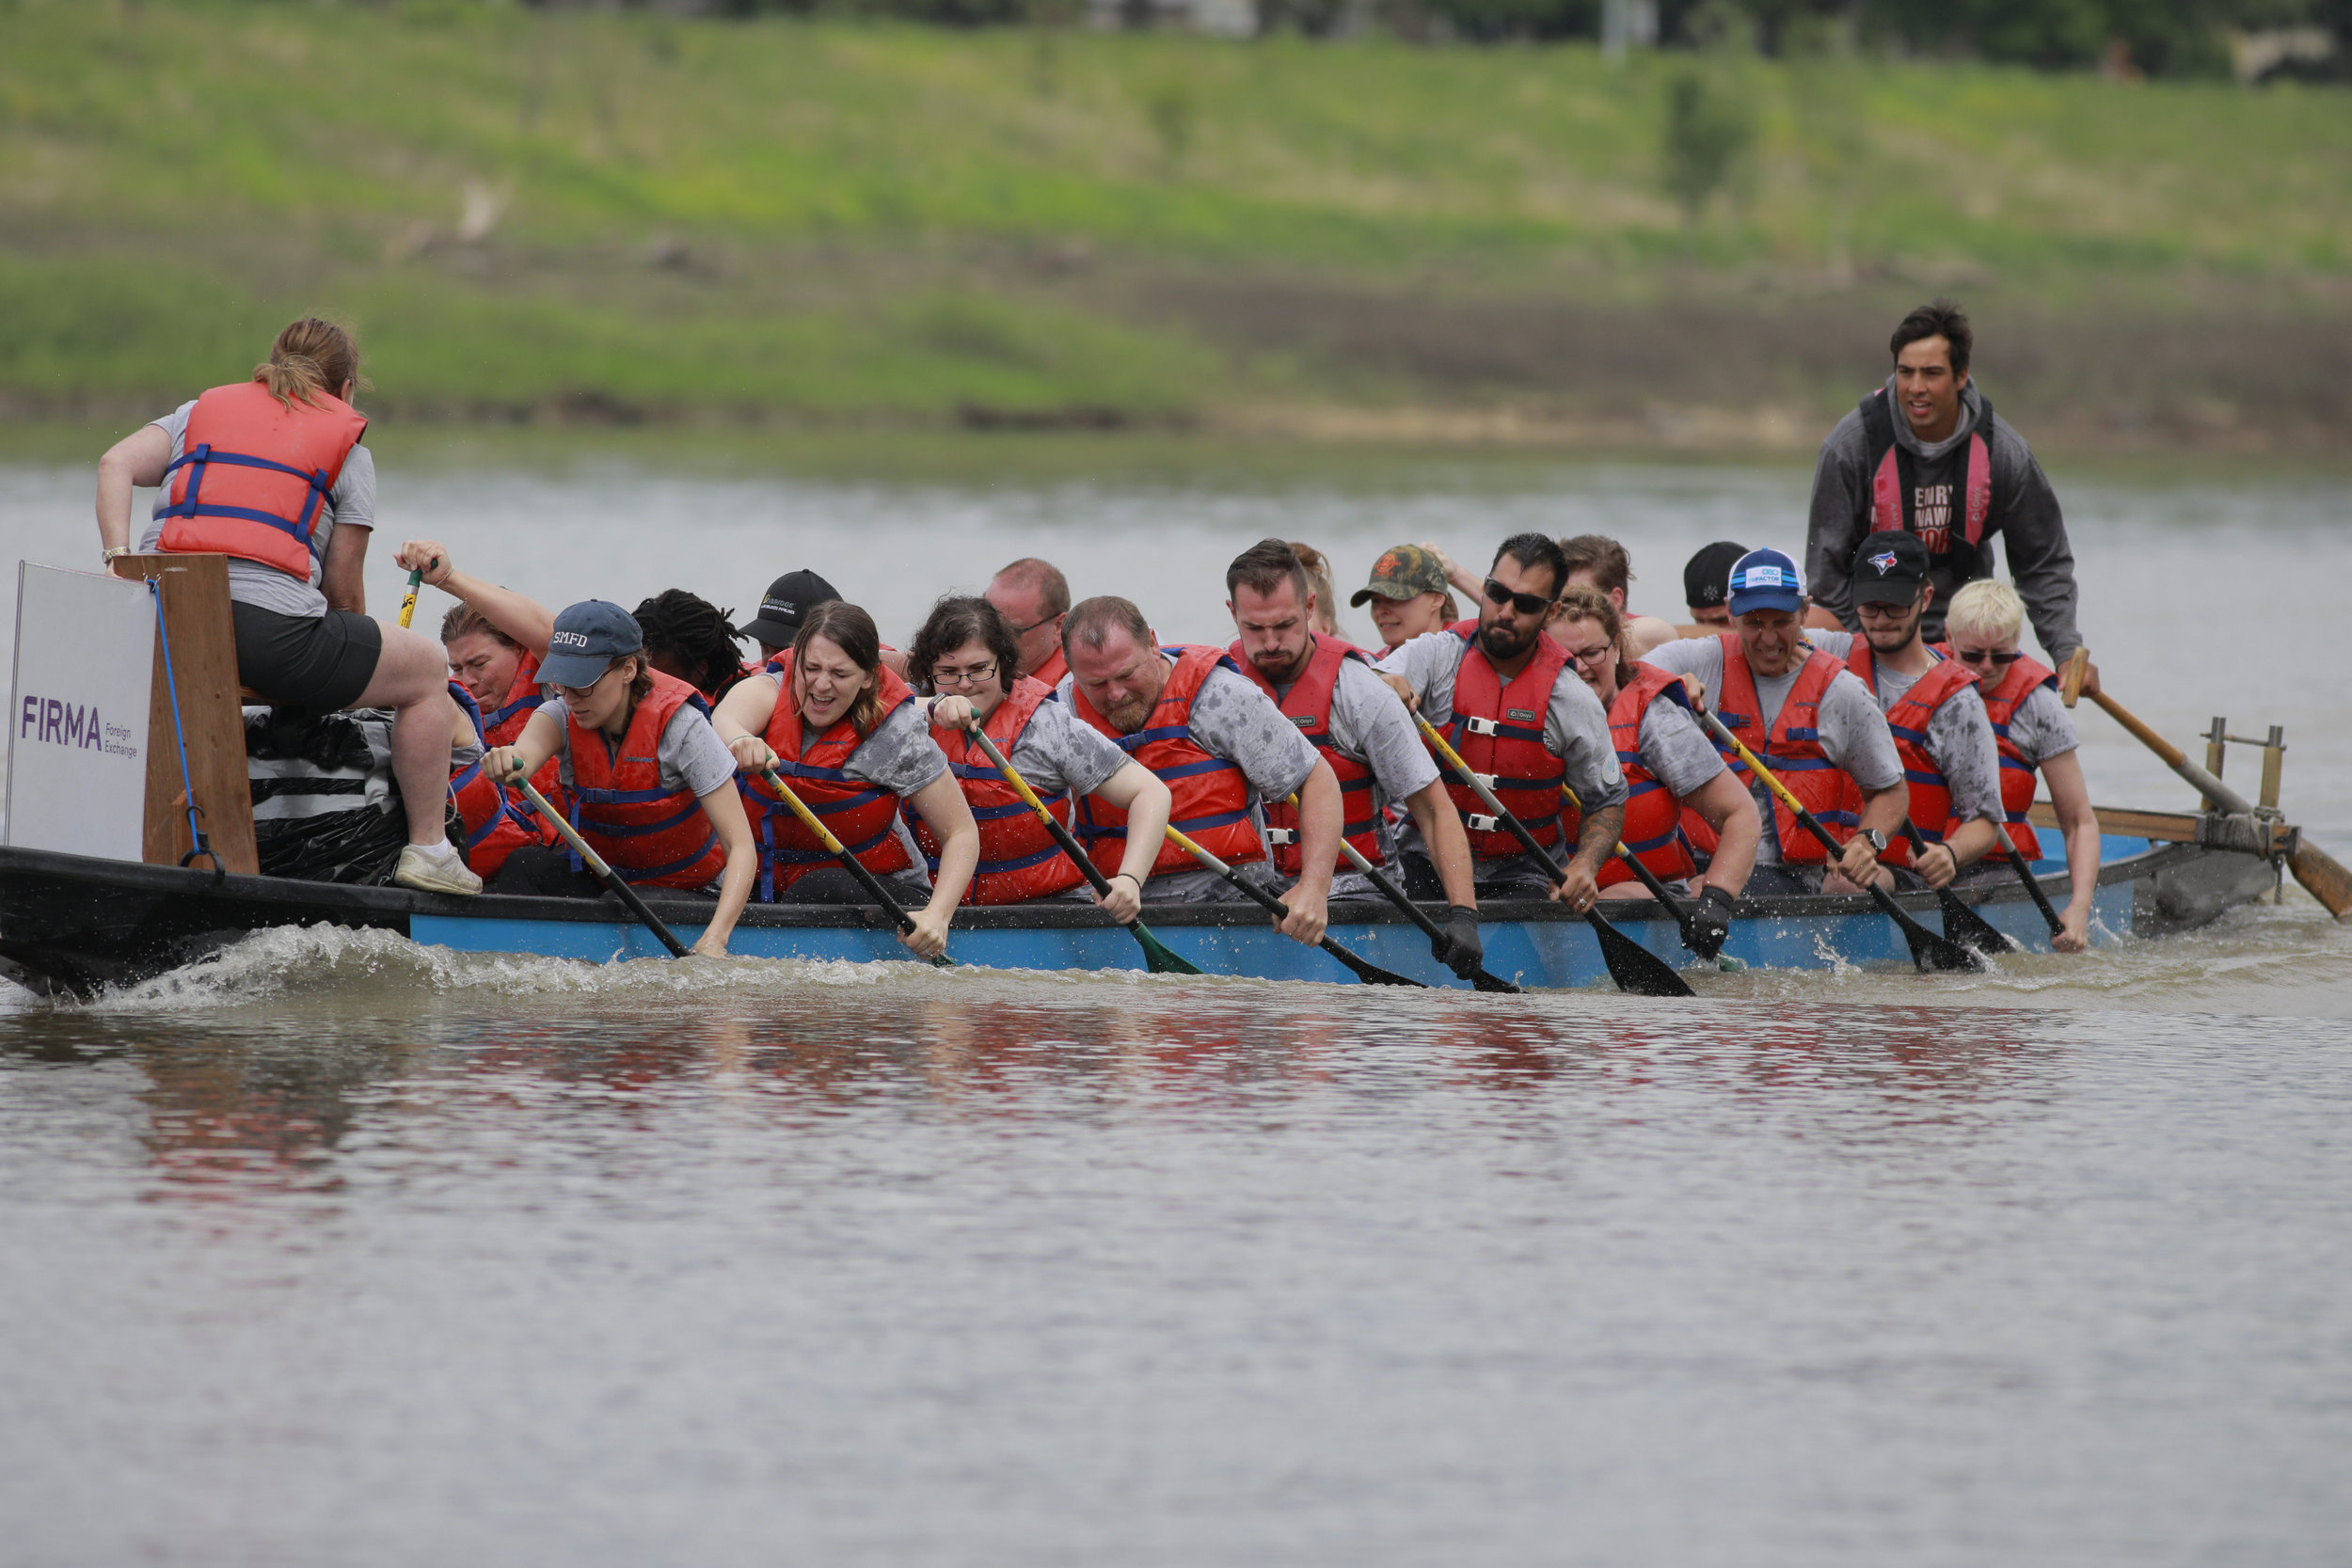 Pictured:   Karmyn's Sushi Krew  paddling hard as the  Top Fundraising Team  of the 2019 River City Dragon Boat Festival